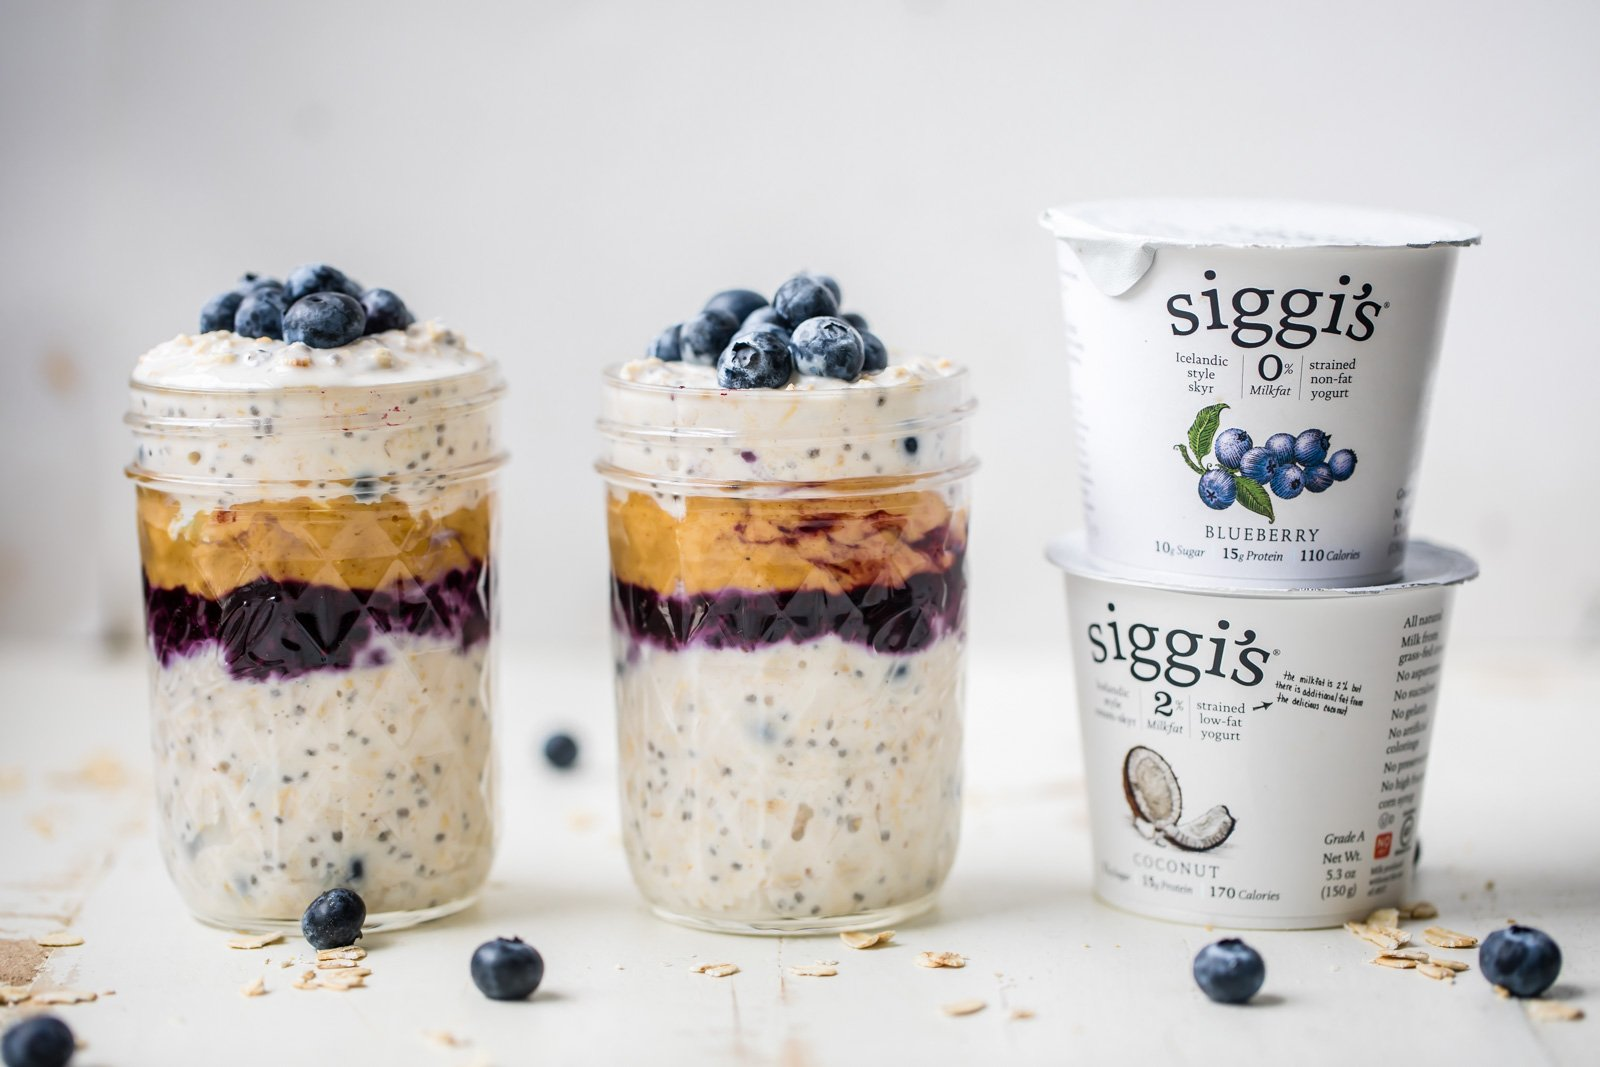 peanut butter blueberry overnight oats in two jars next to two containers of siggi's yogurt